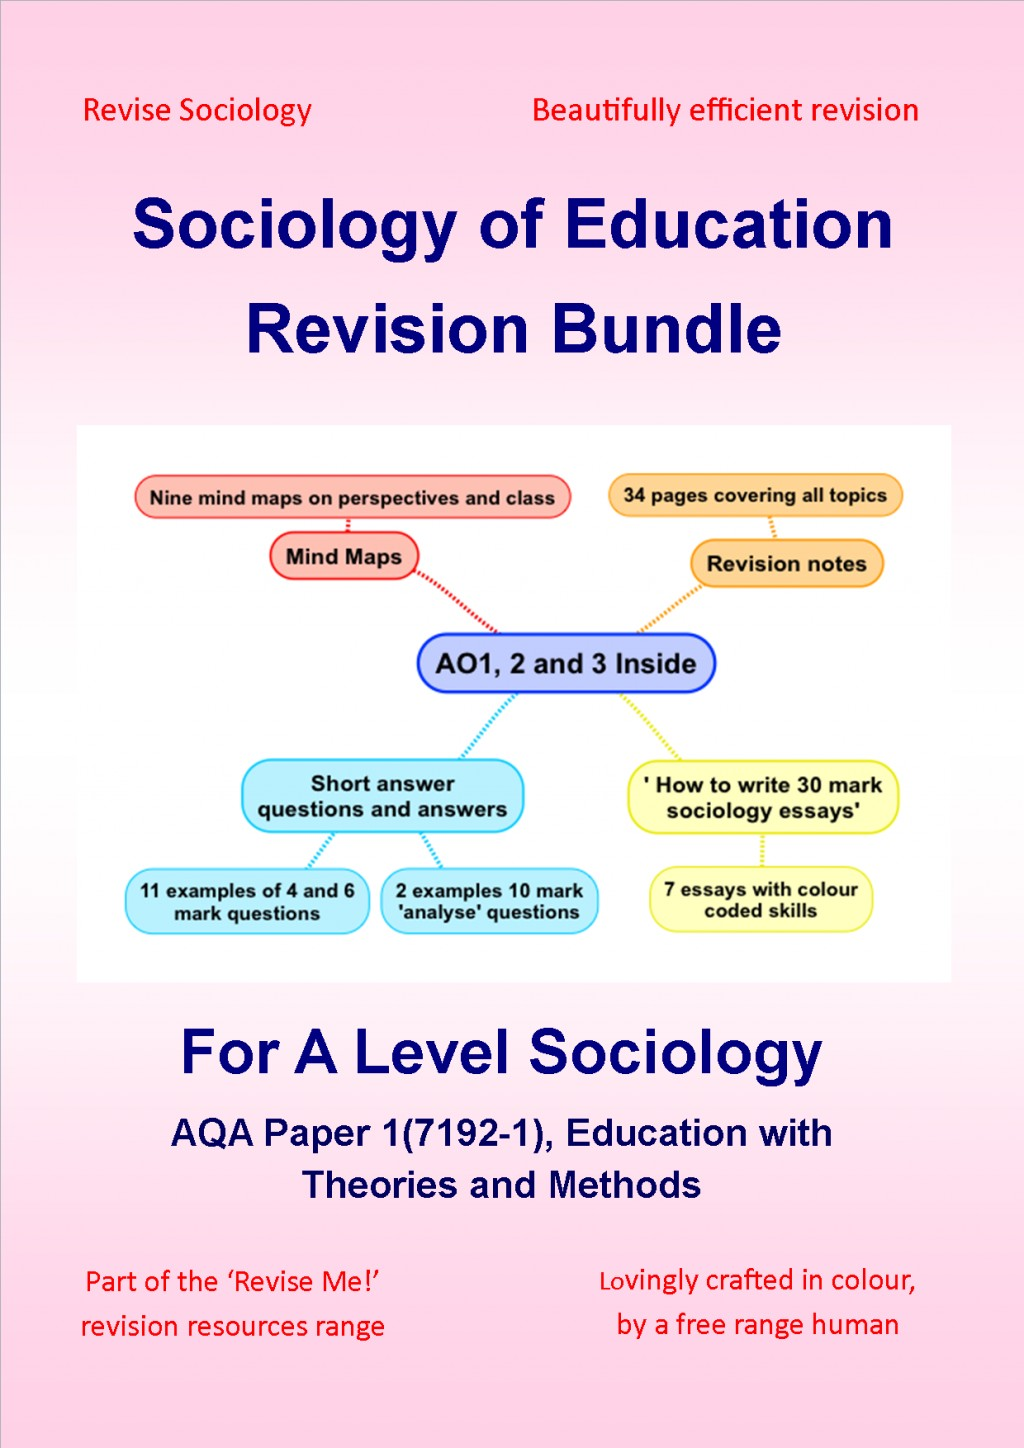 023 Education Revision Bundle Coverw212 Research Paper Best Sociology Top Topics Large